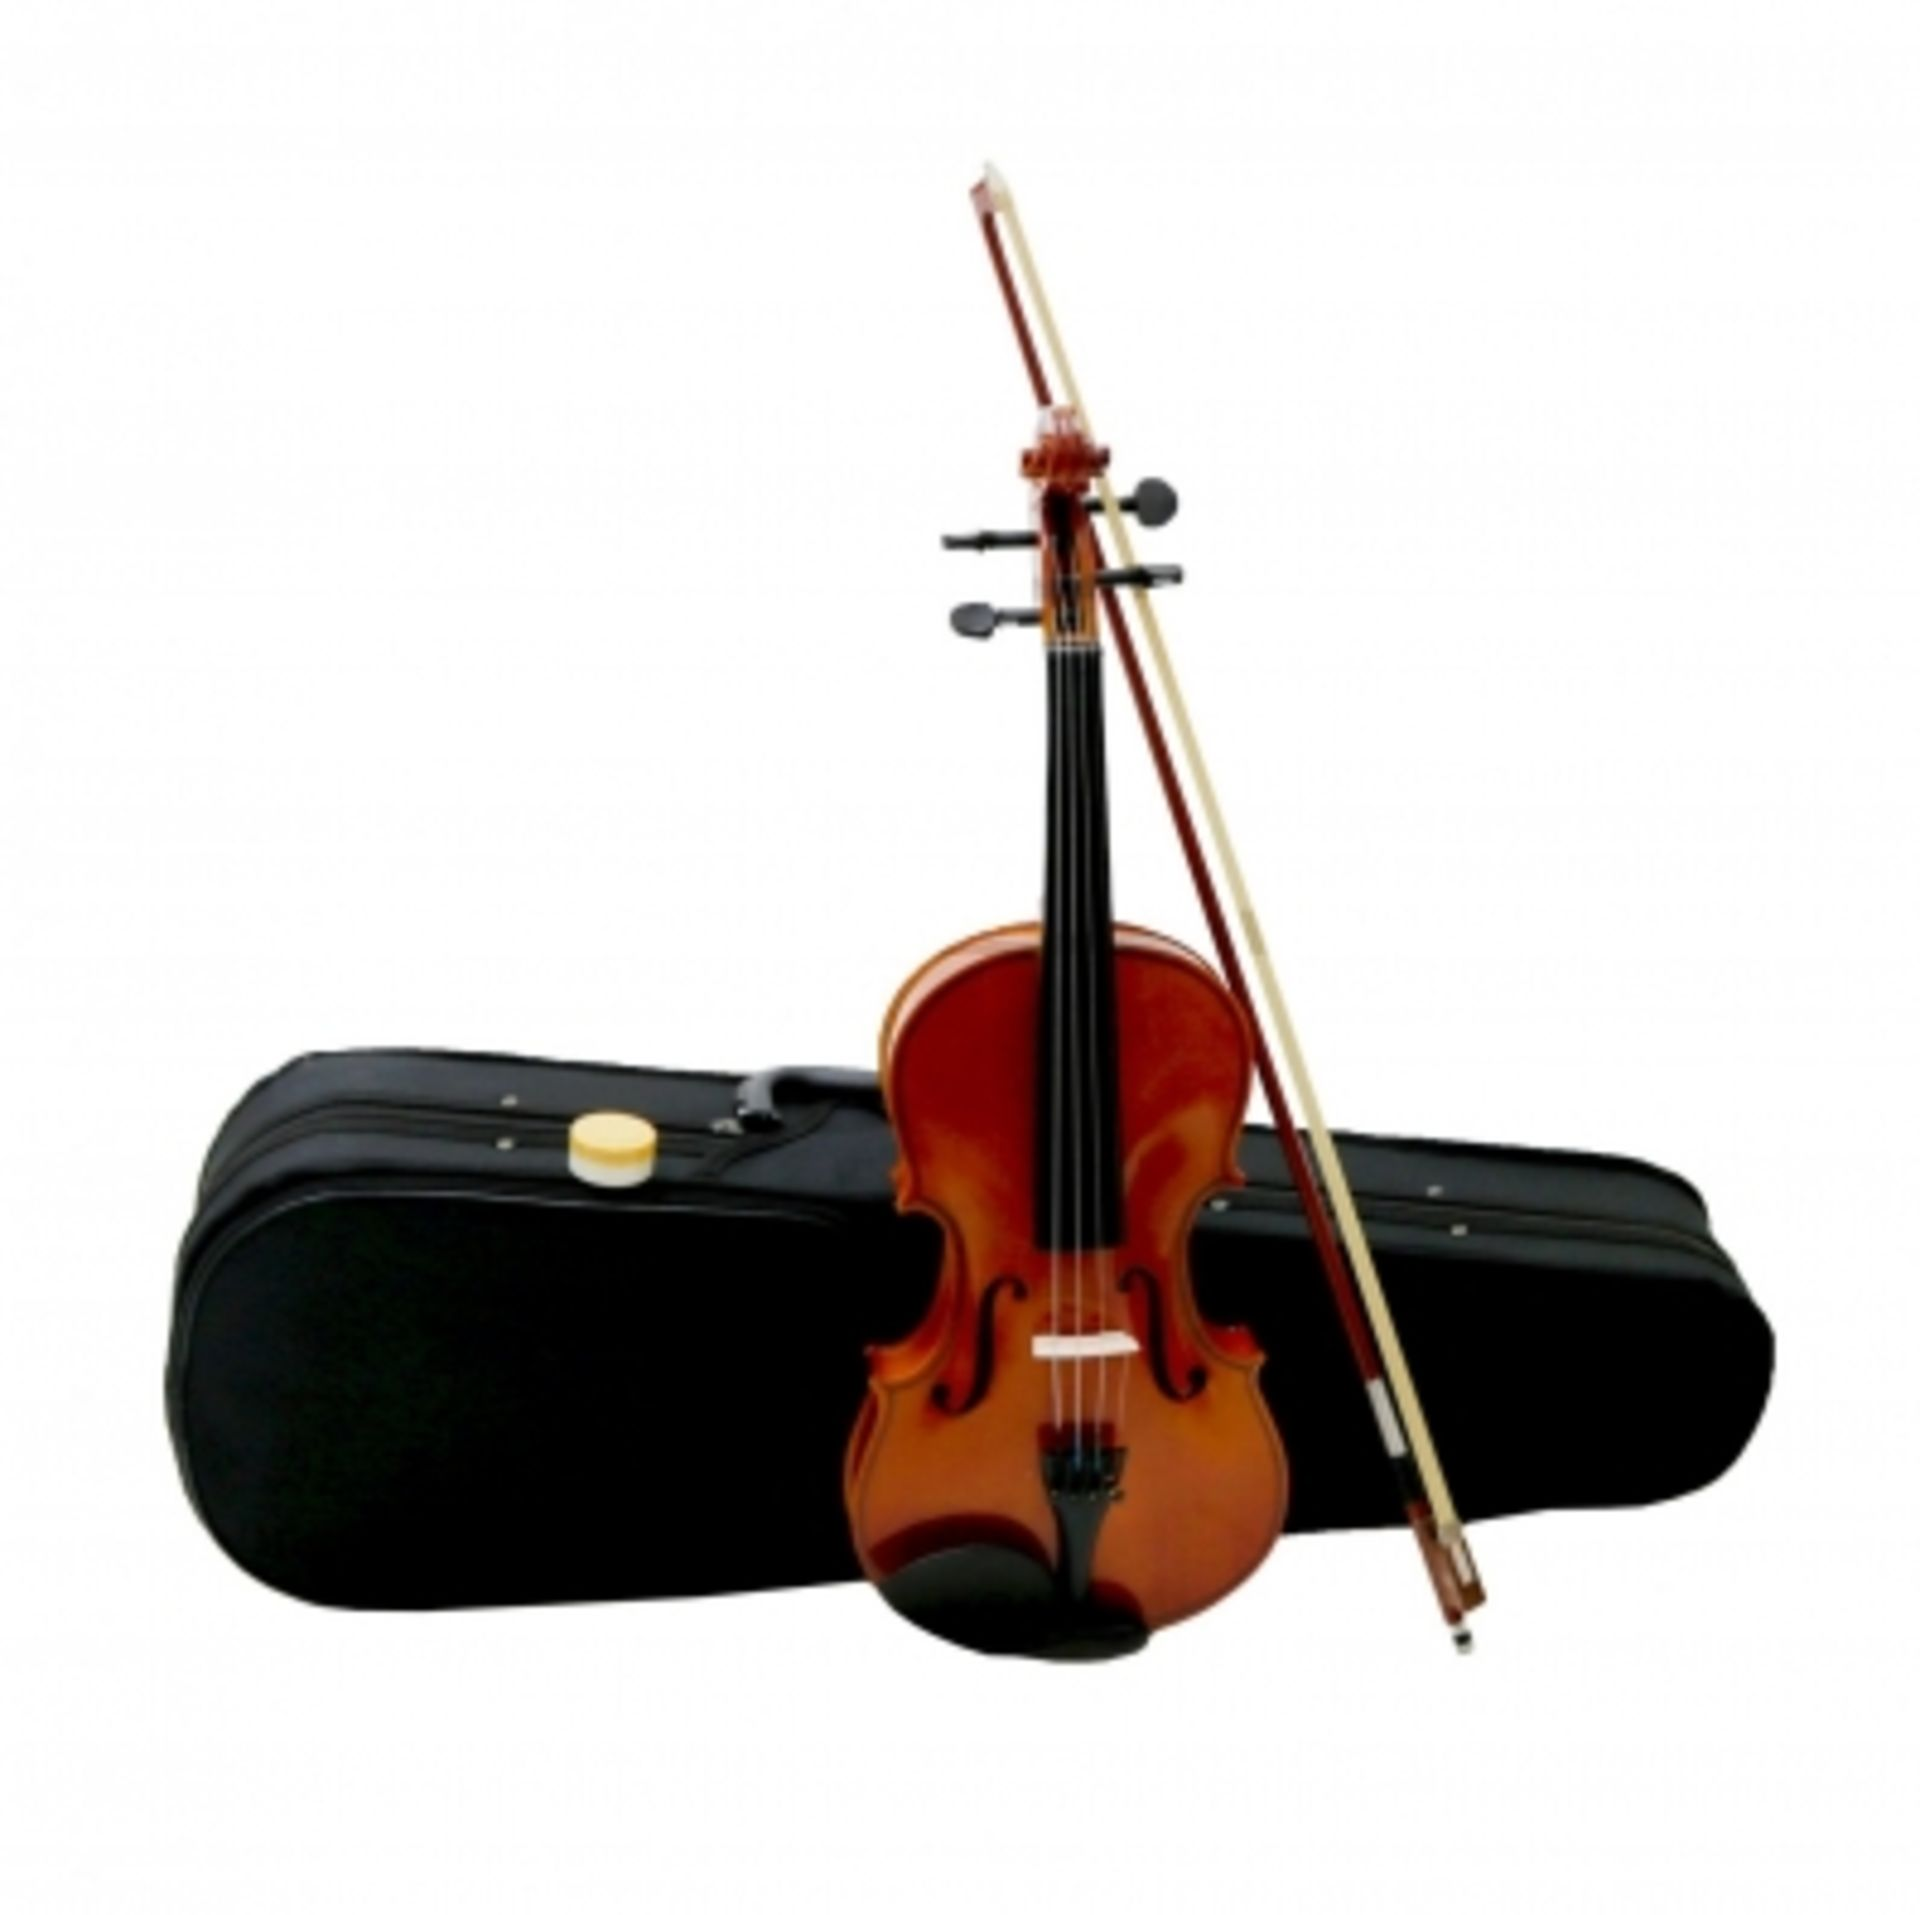 Lot 72 - (RU43) Full Size 4/4 Acoustic Violin Set with Case, Bow & Rosin If you're learning to play v...